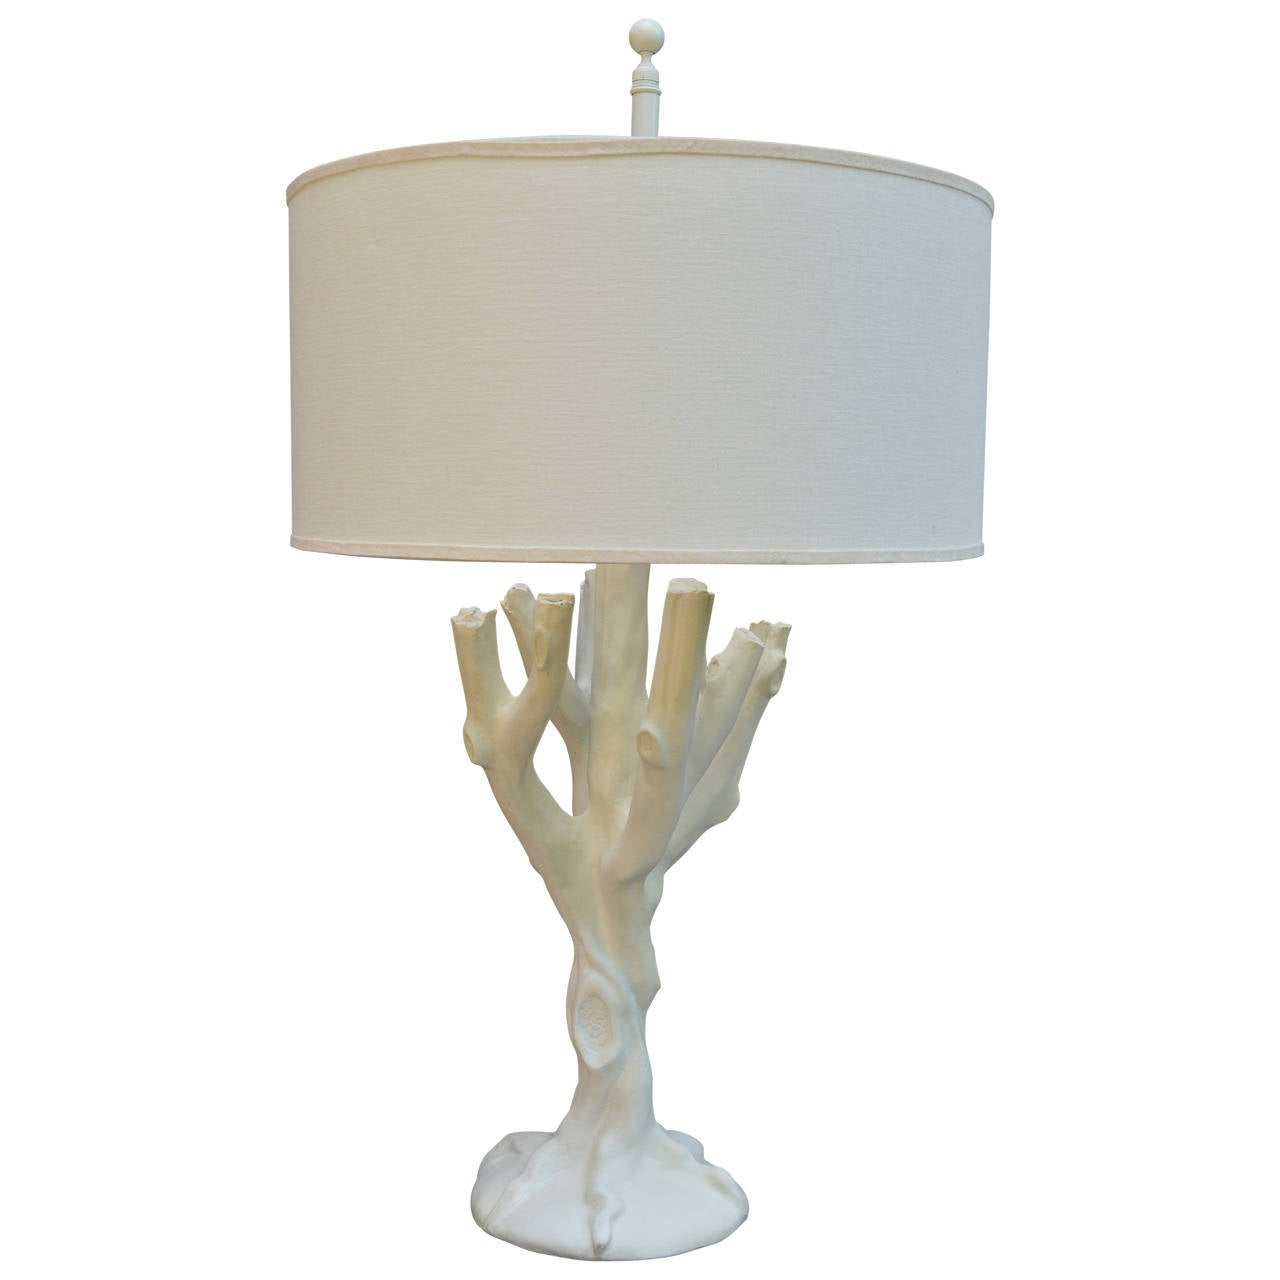 Mid-Century Modern Plaster Tree Lamp in the Style of John Dickinson For Sale